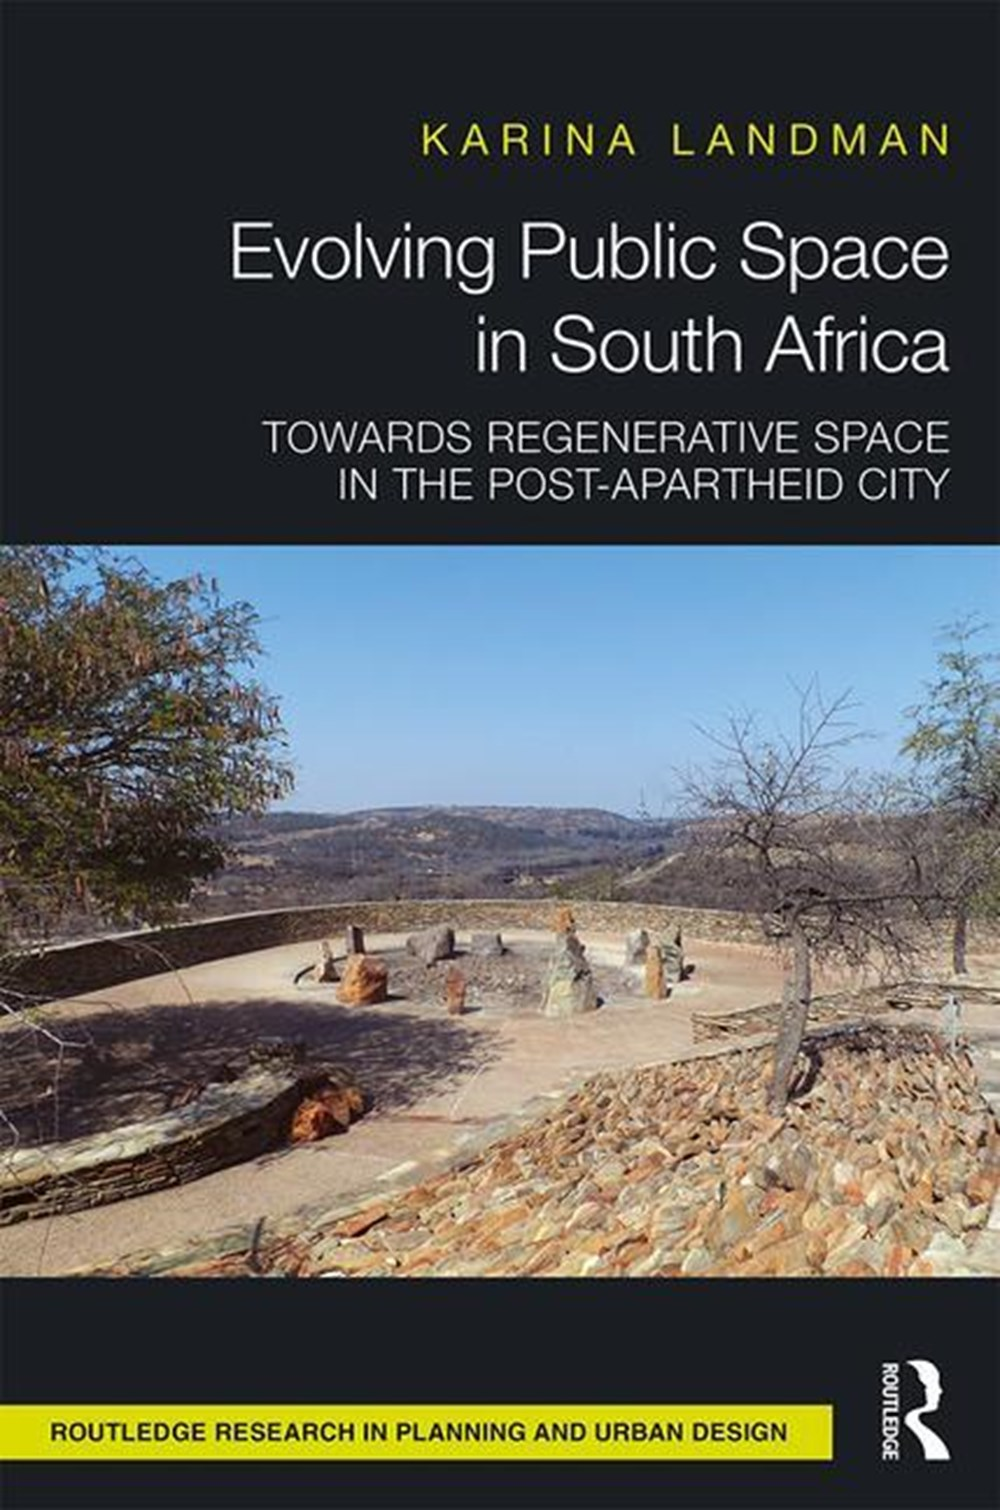 Evolving Public Space in South Africa Towards Regenerative Space in the Post-Apartheid City